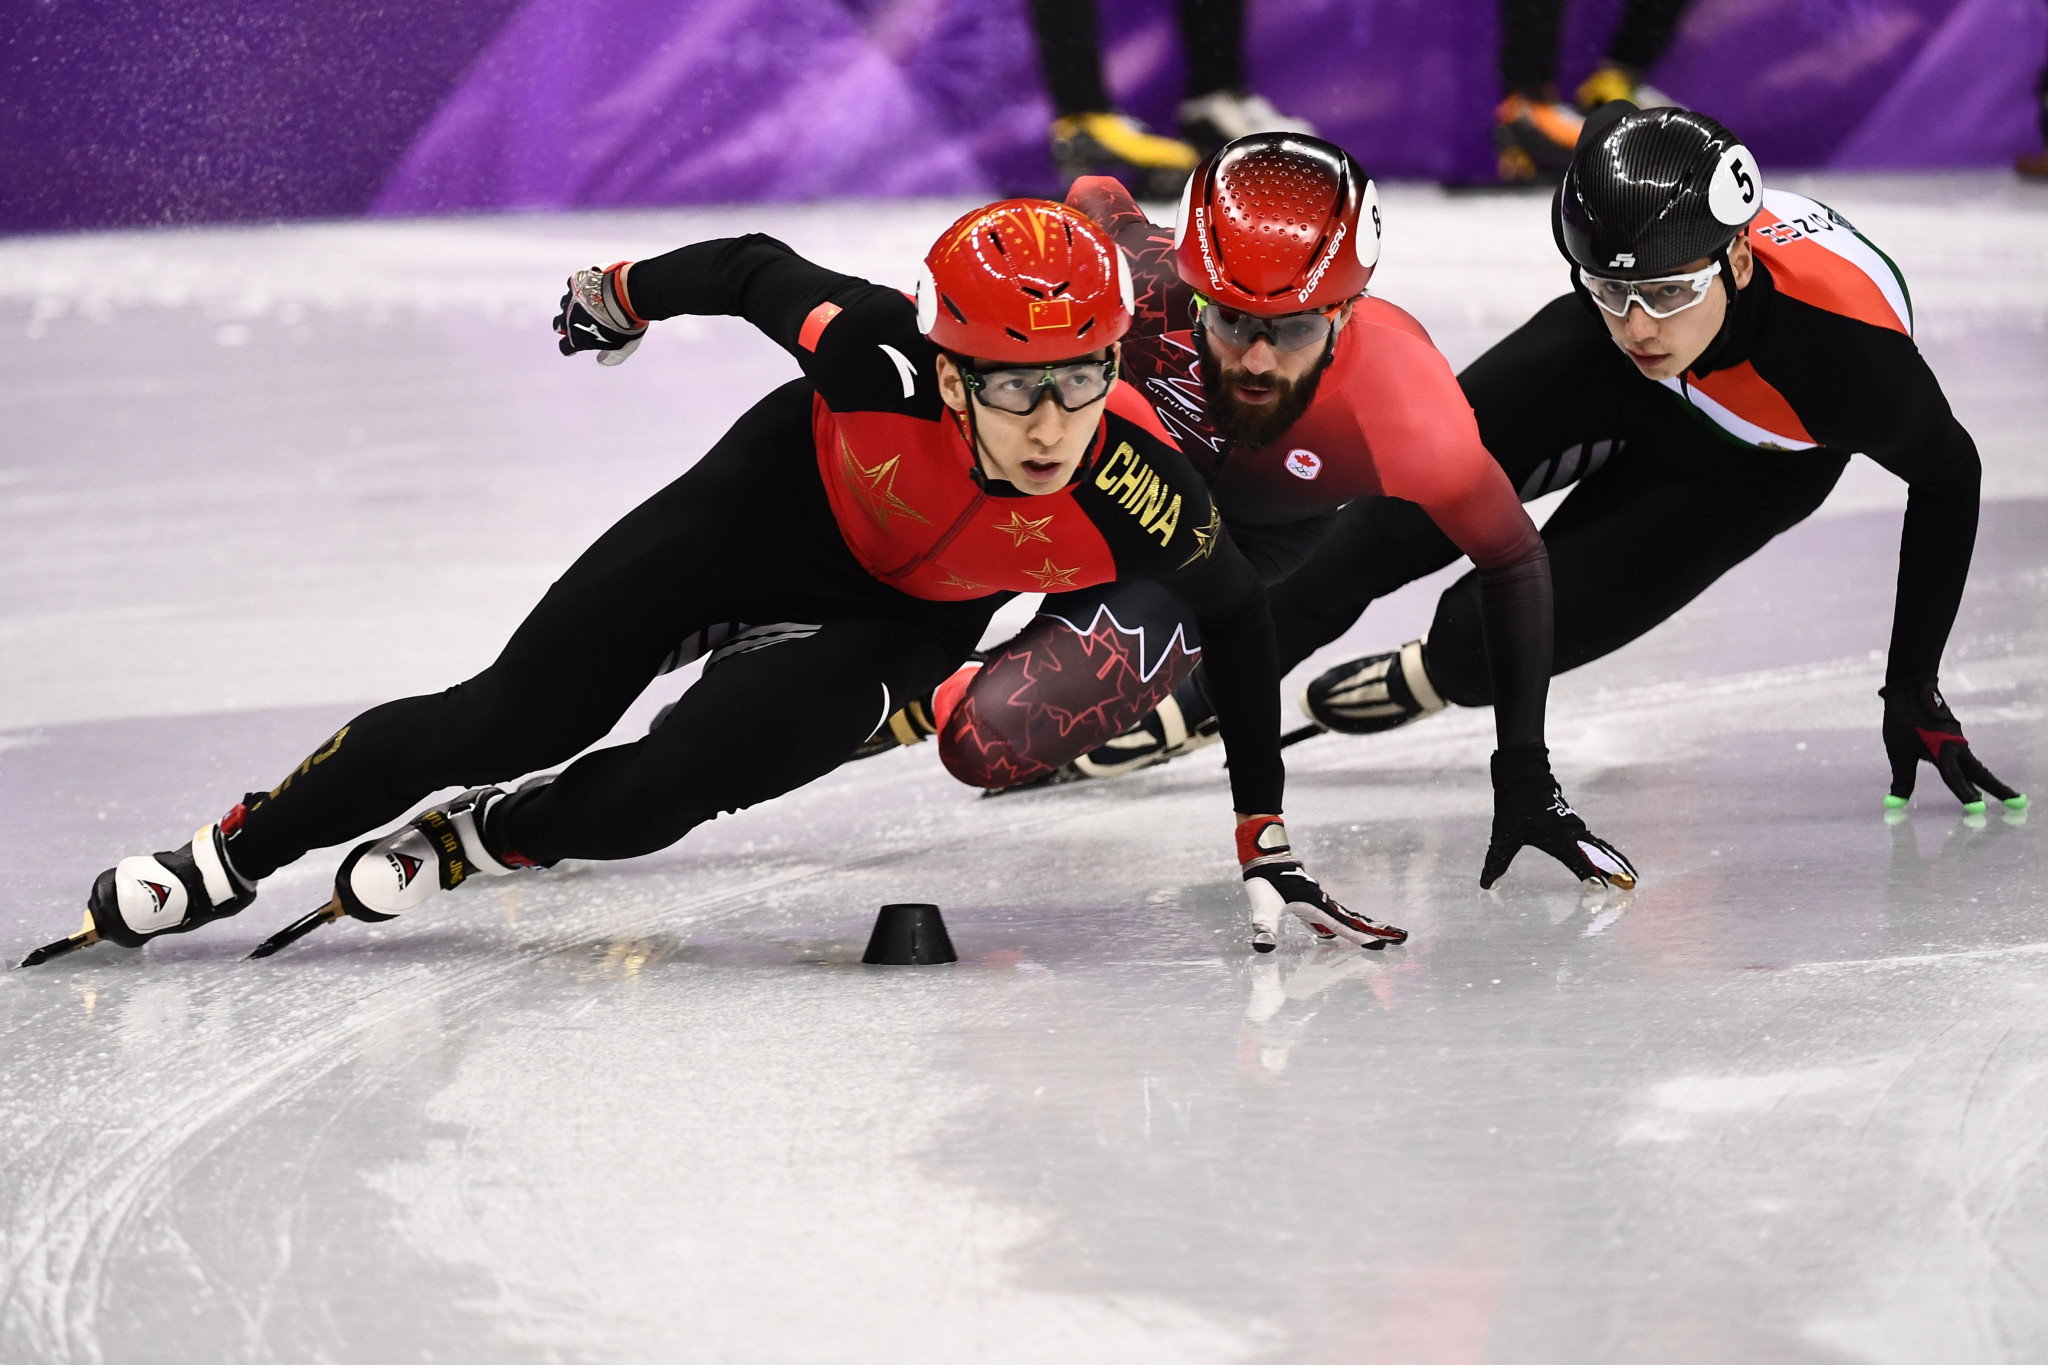 Nearly all of China's Winter Olympic gold medals have come on ice skates ©Getty Images